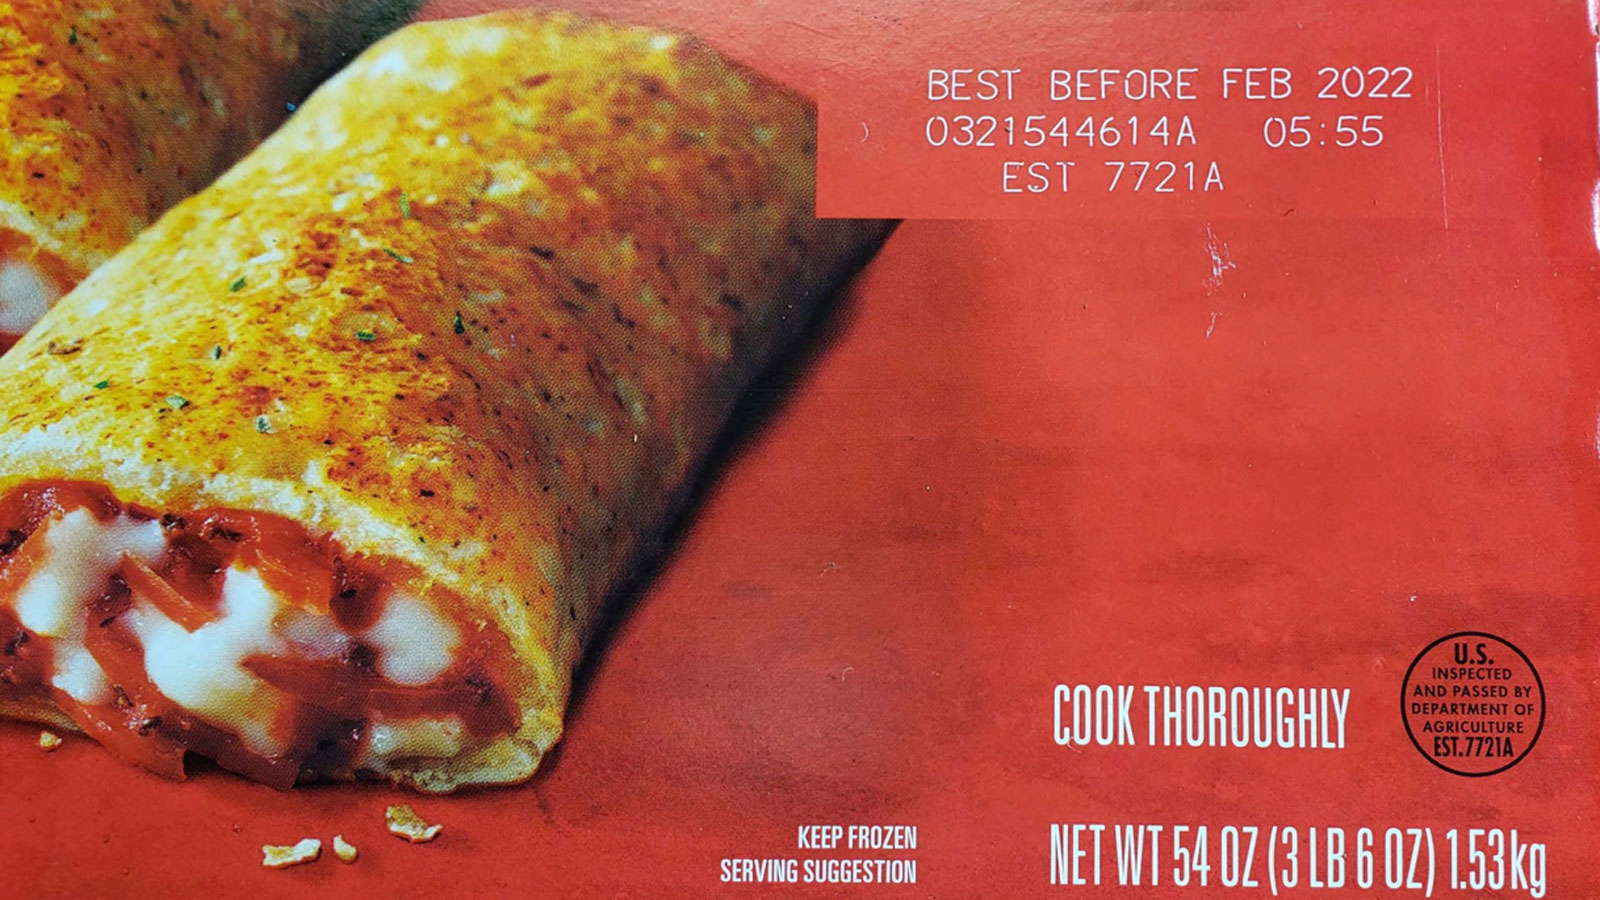 Hot Pockets recalled over potential glass and plastic contamination